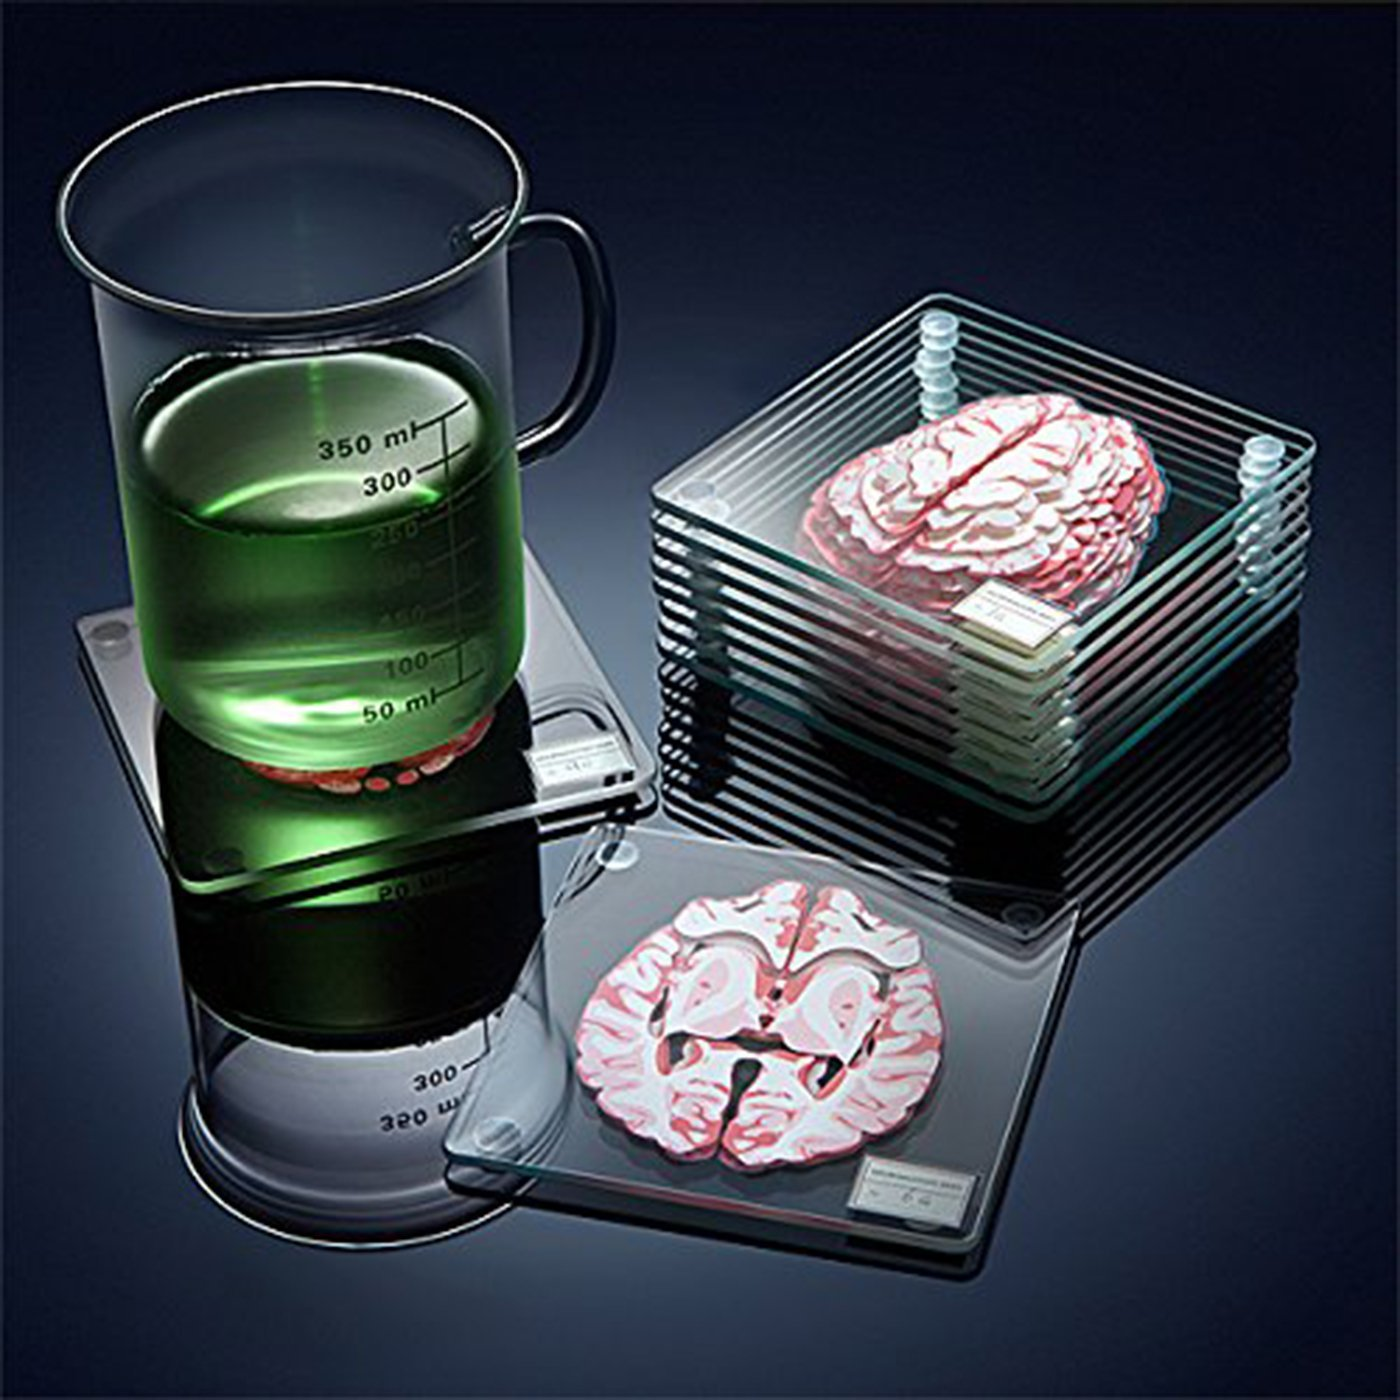 Cool Bar Coasters Brain Specimen Coasters Didn 39t Know I Wanted That